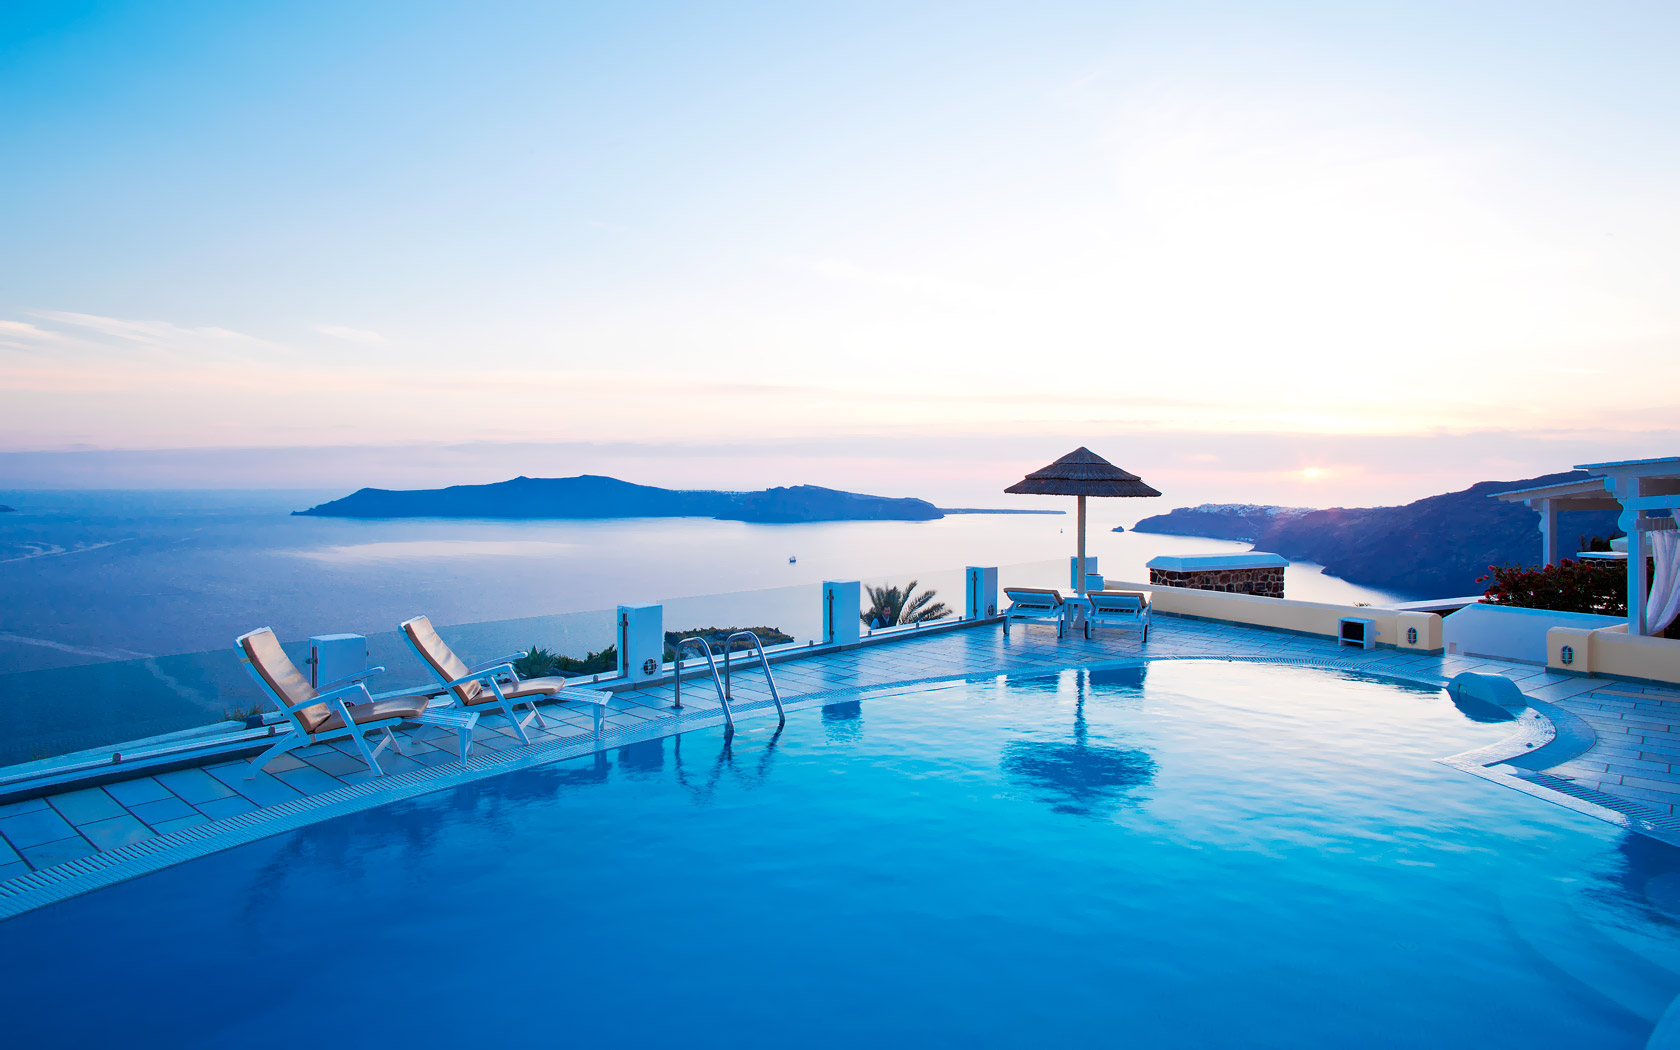 Santorini Luxury Hotel